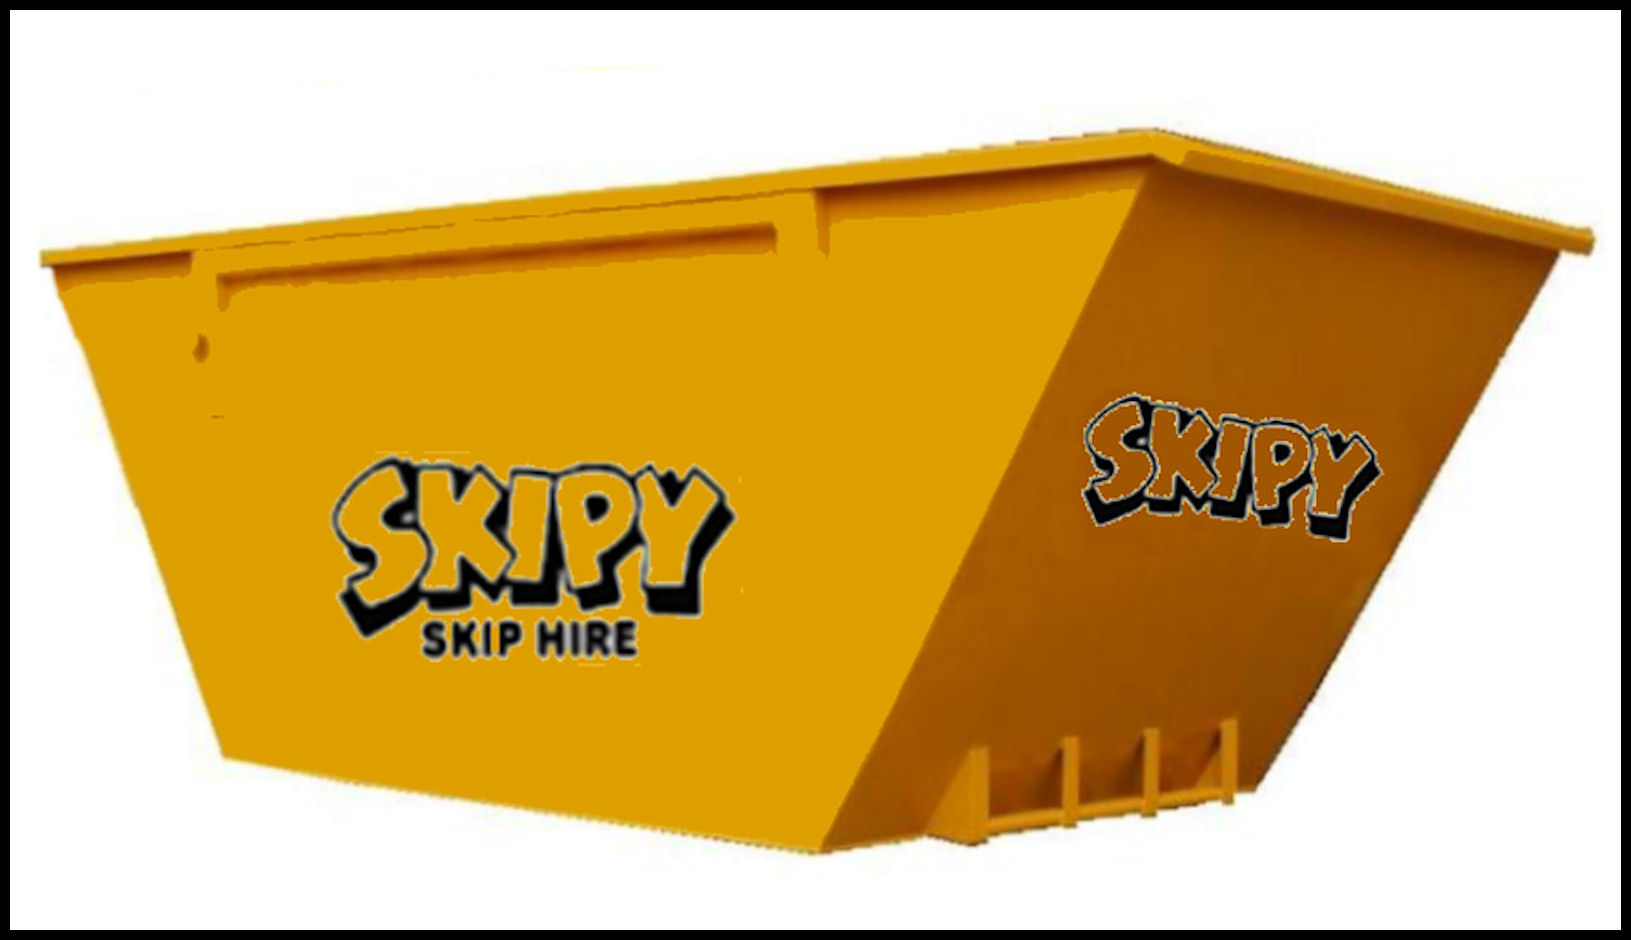 An example of one of our Builders/Maxi skips